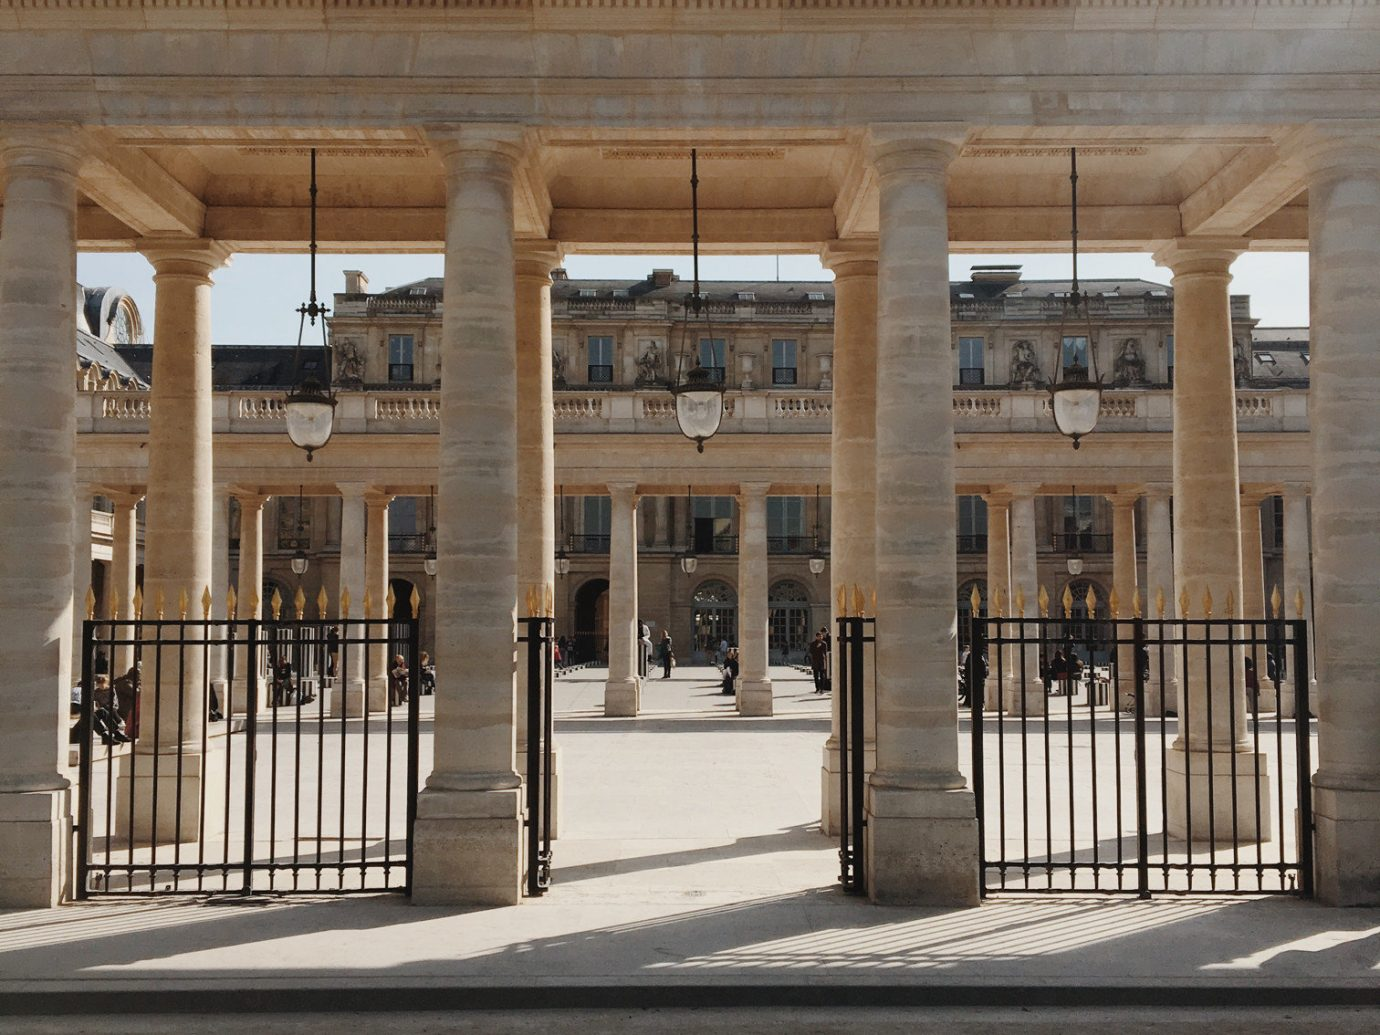 France Paris Trip Ideas building Architecture facade interior design plaza colonnade walkway